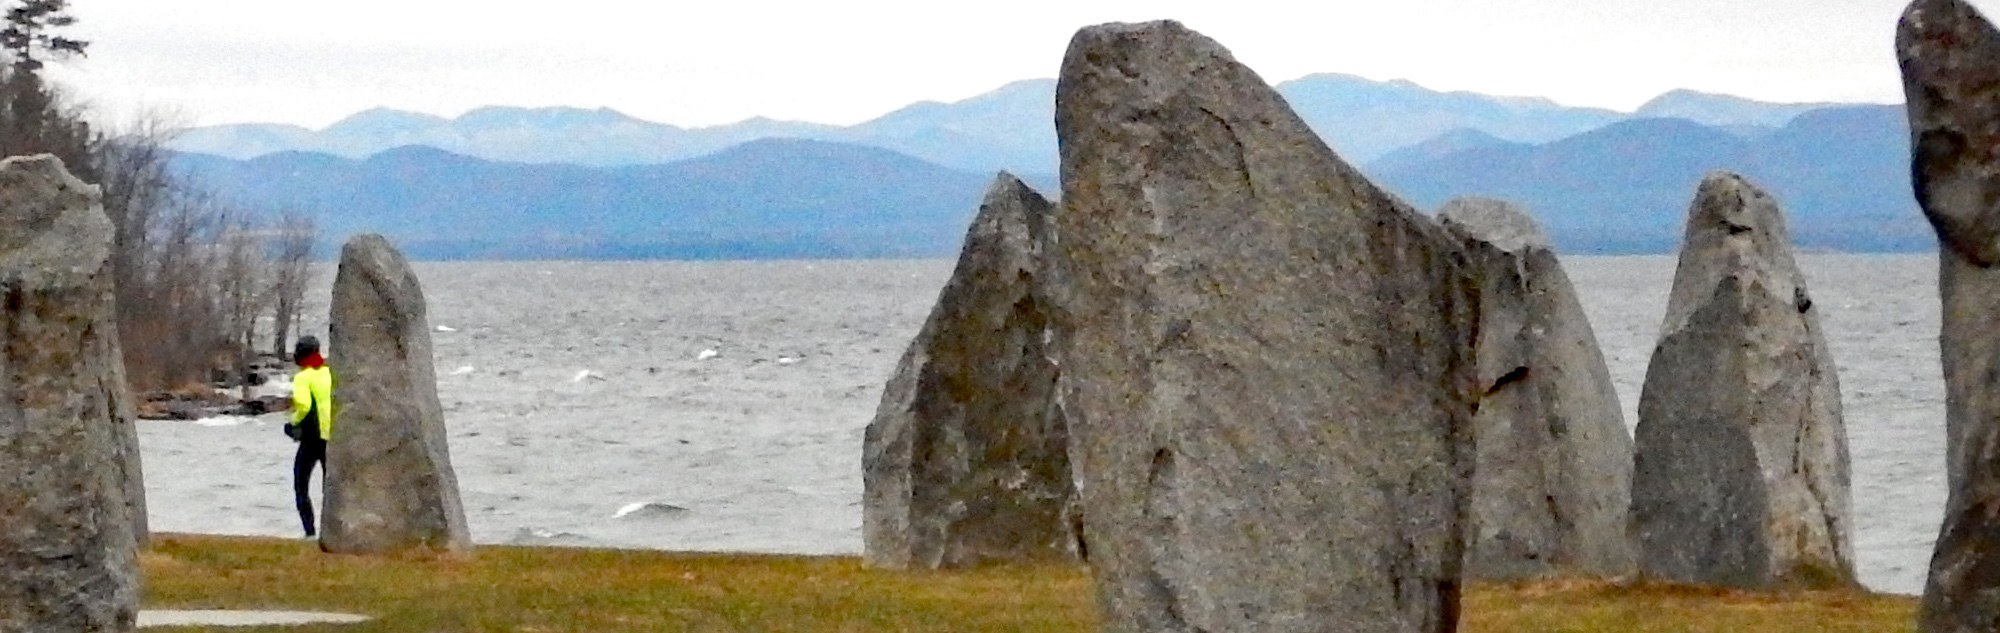 Lake Champlain and mini stonehenge